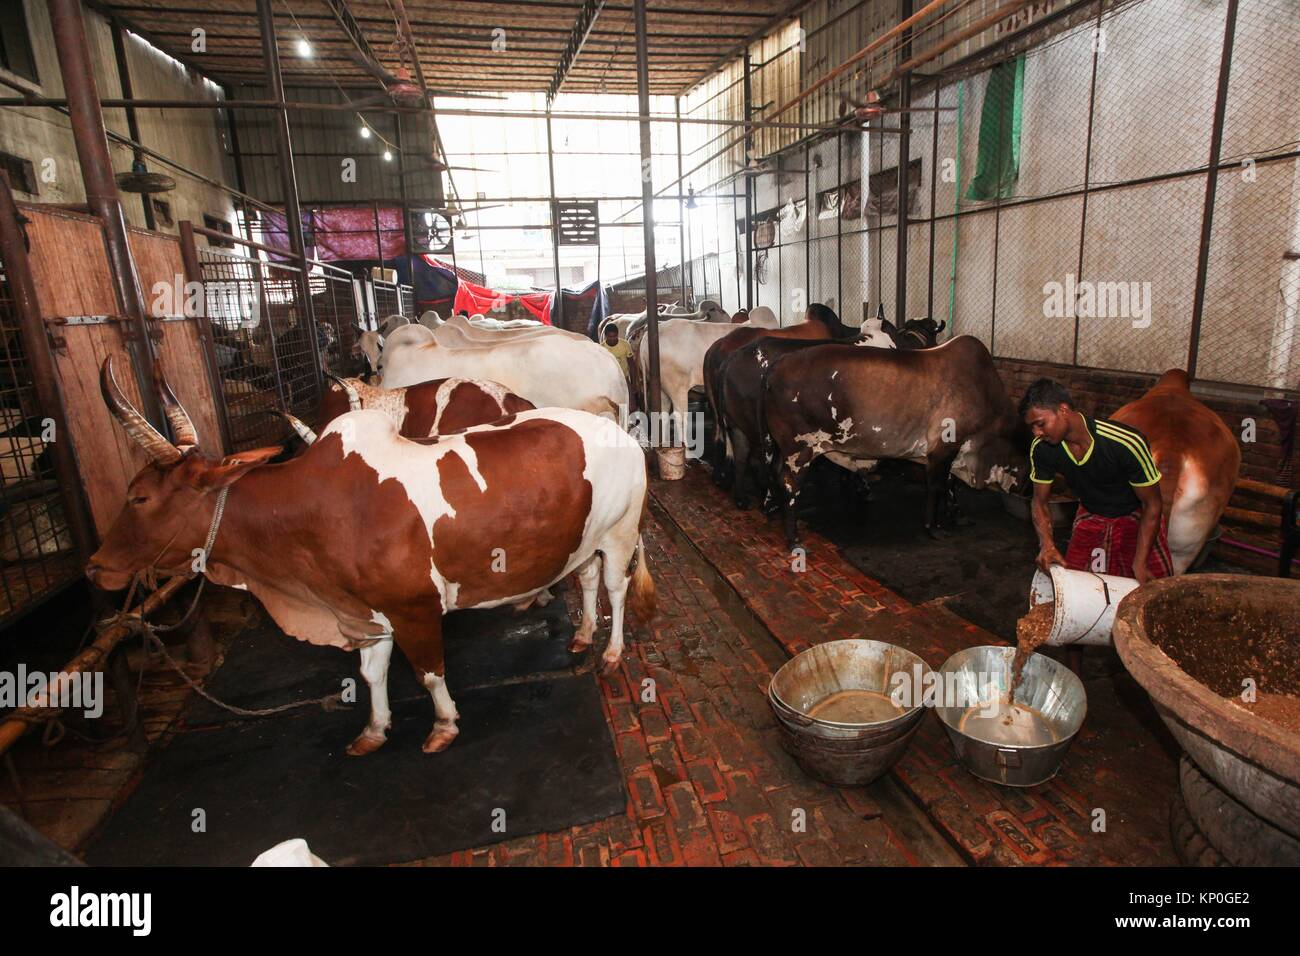 A busy cattle market in Dhaka city, on the eve of Eid-ul-Adha, the annual Muslim festival that commemorates the Stock Photo